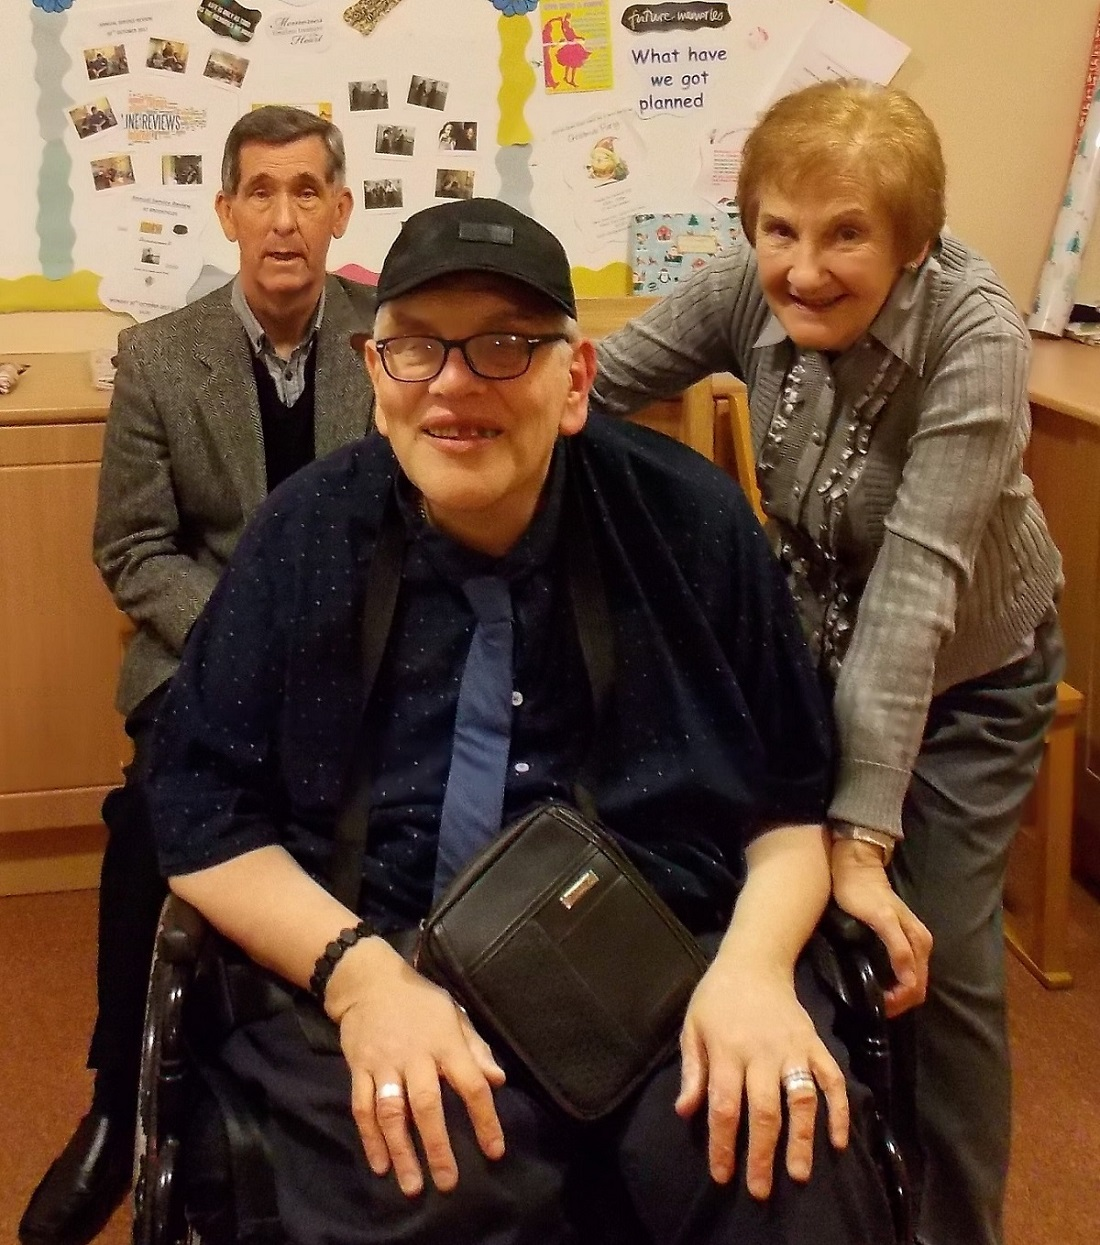 John, one of Brookfields' long-standing residents